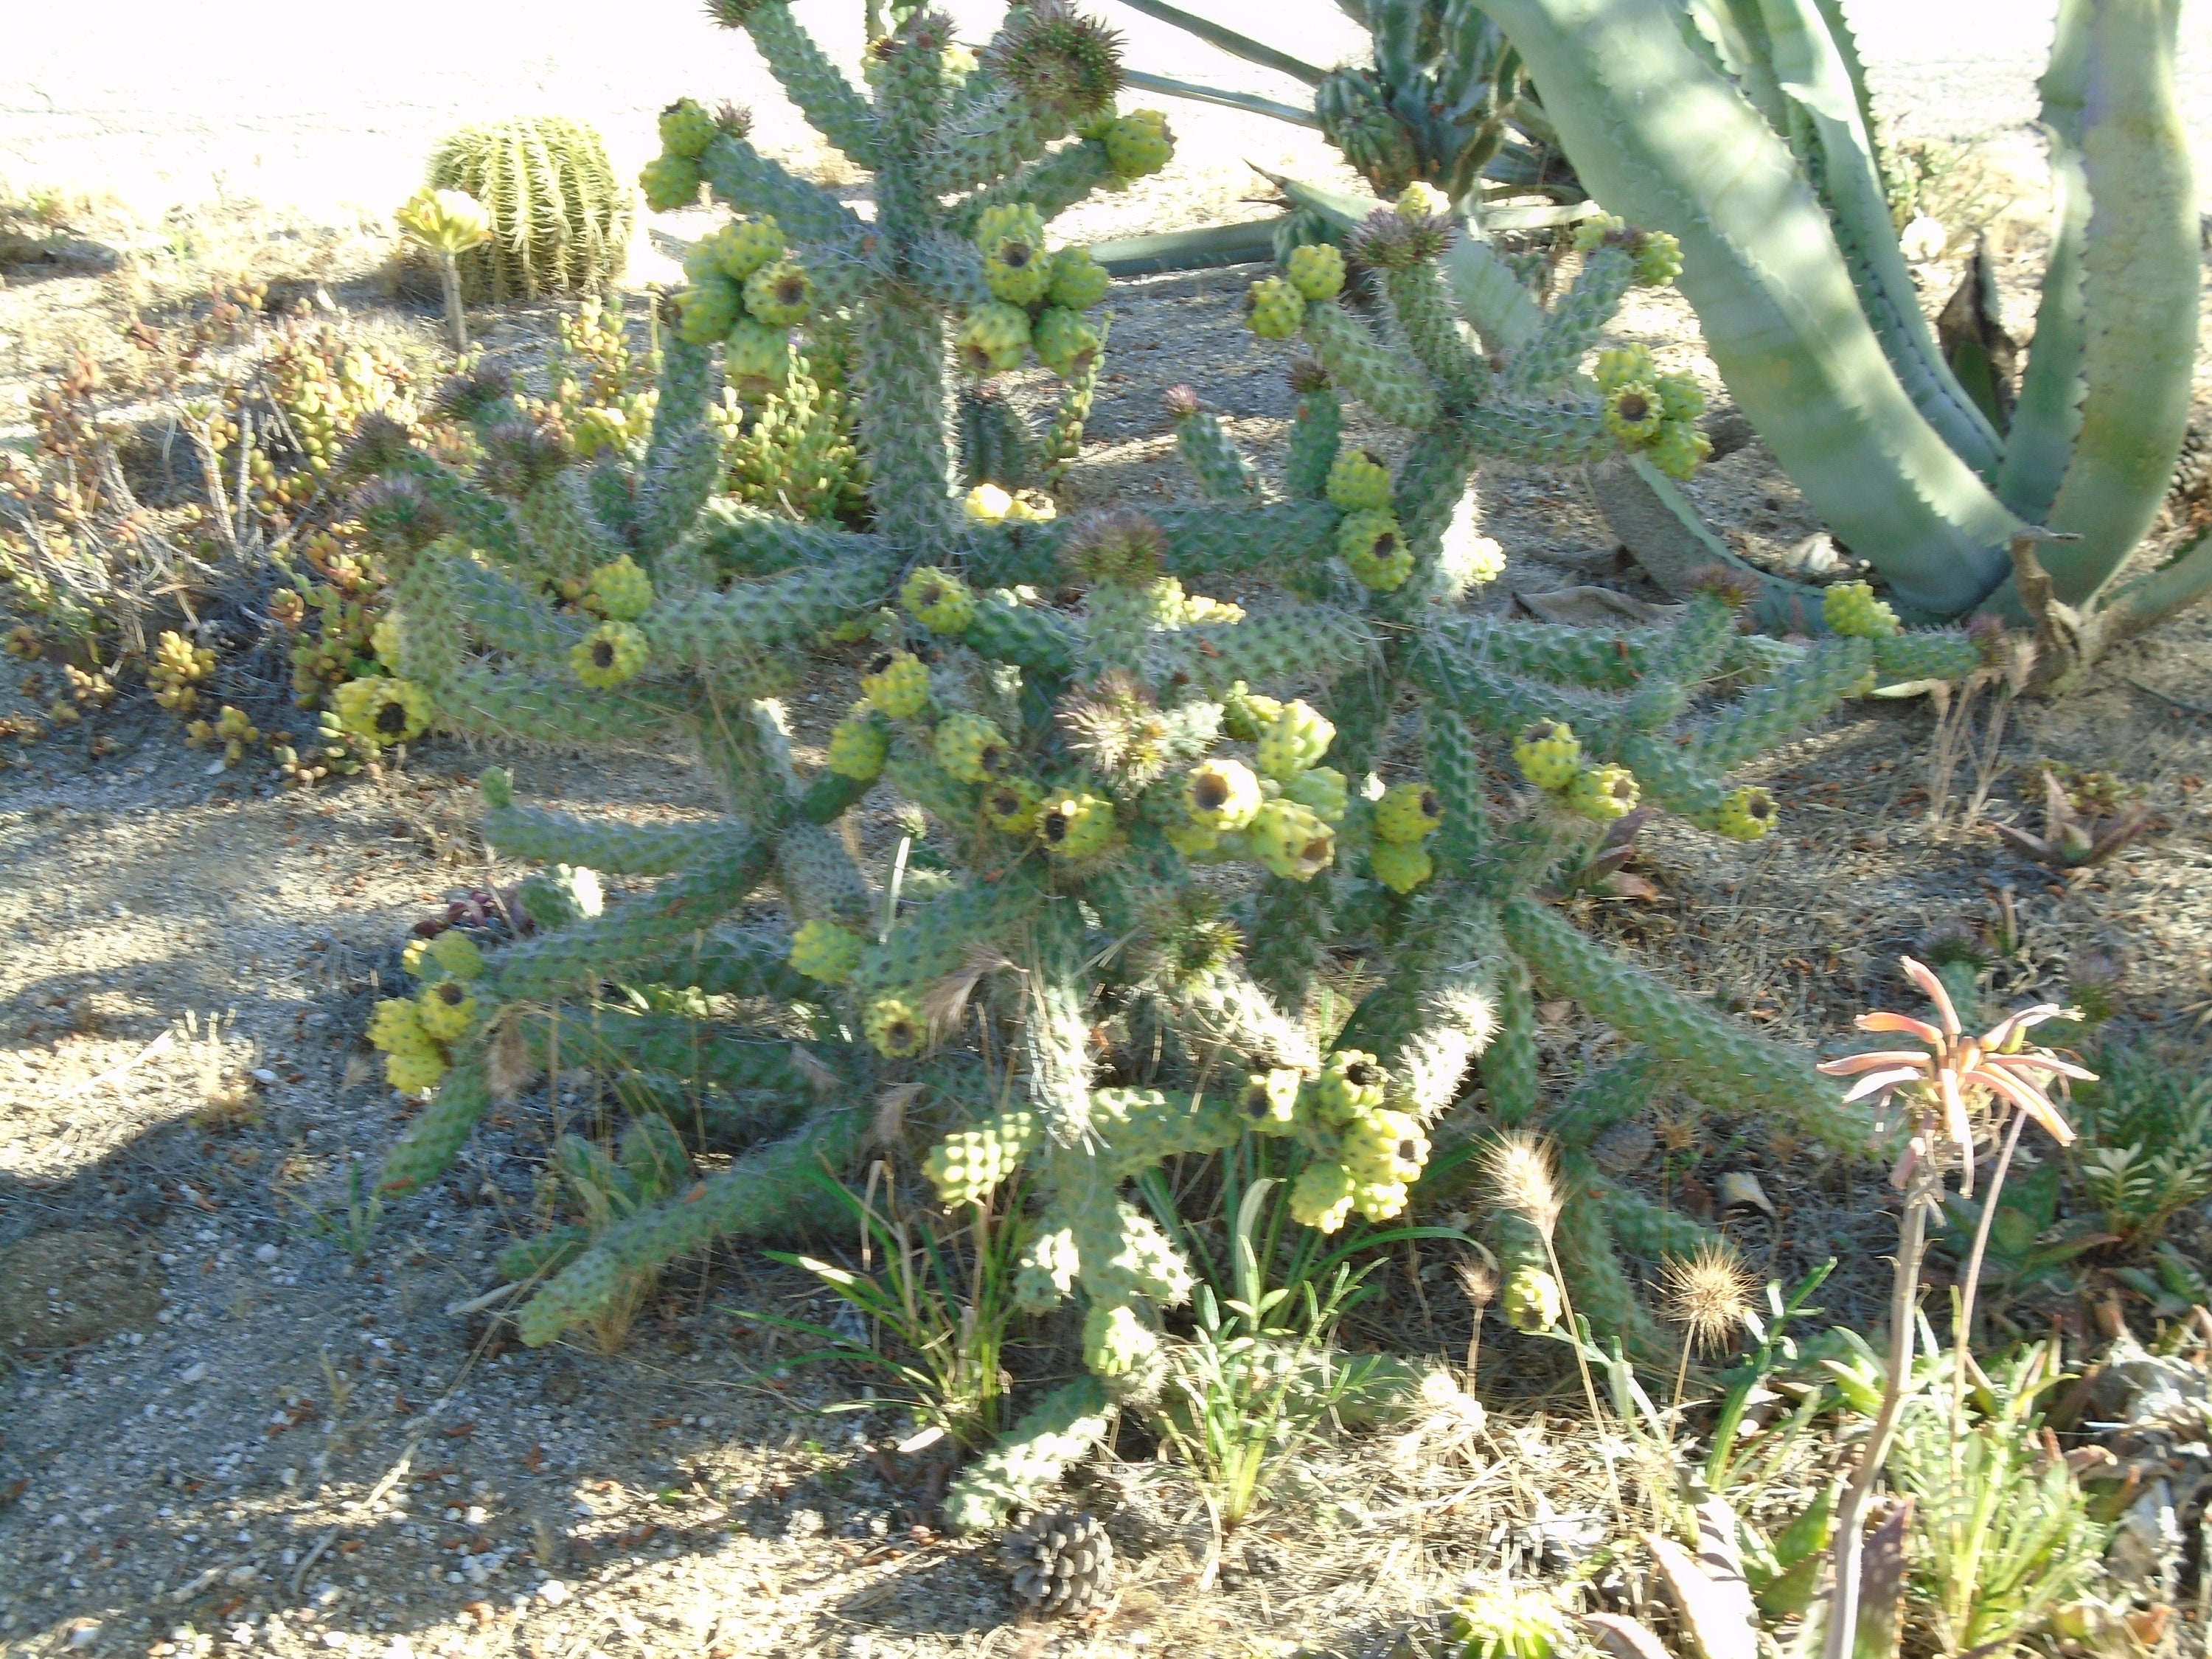 3 stems cane cholla cylindropuntia